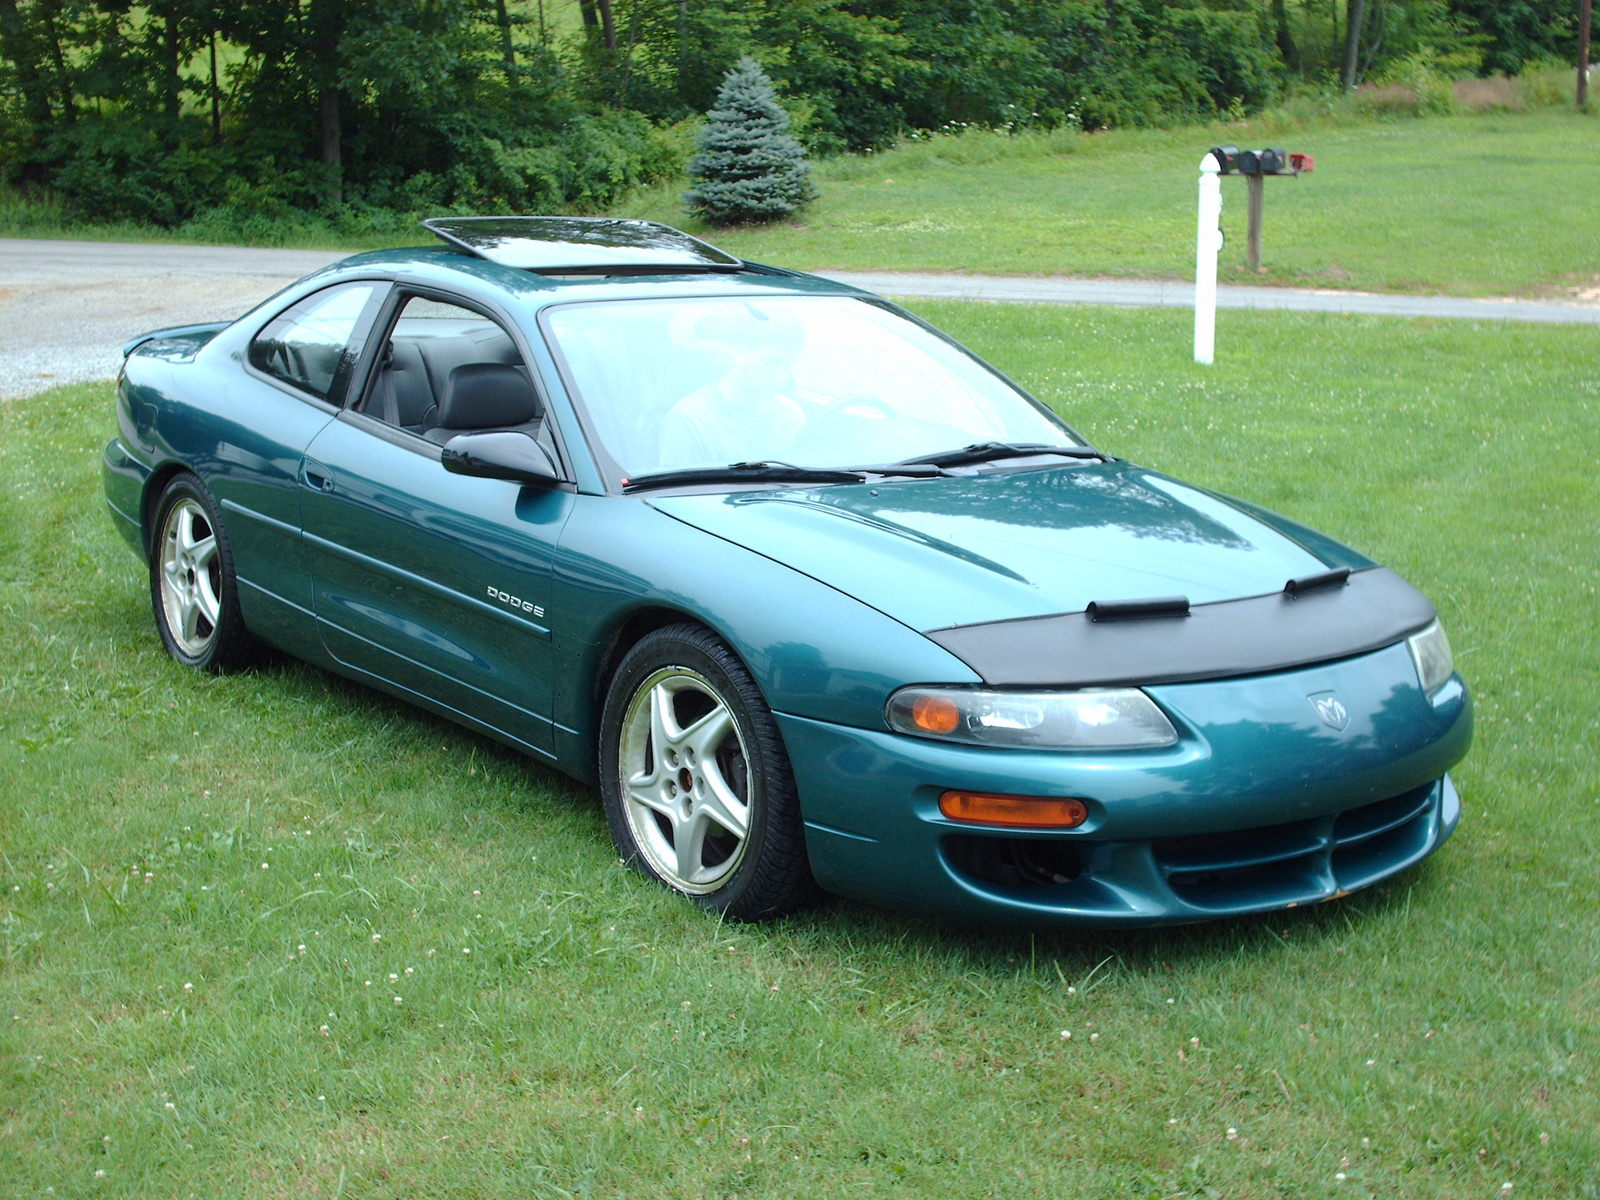 Picture of 1999 Dodge Avenger 2 Dr ES Coupe, exterior